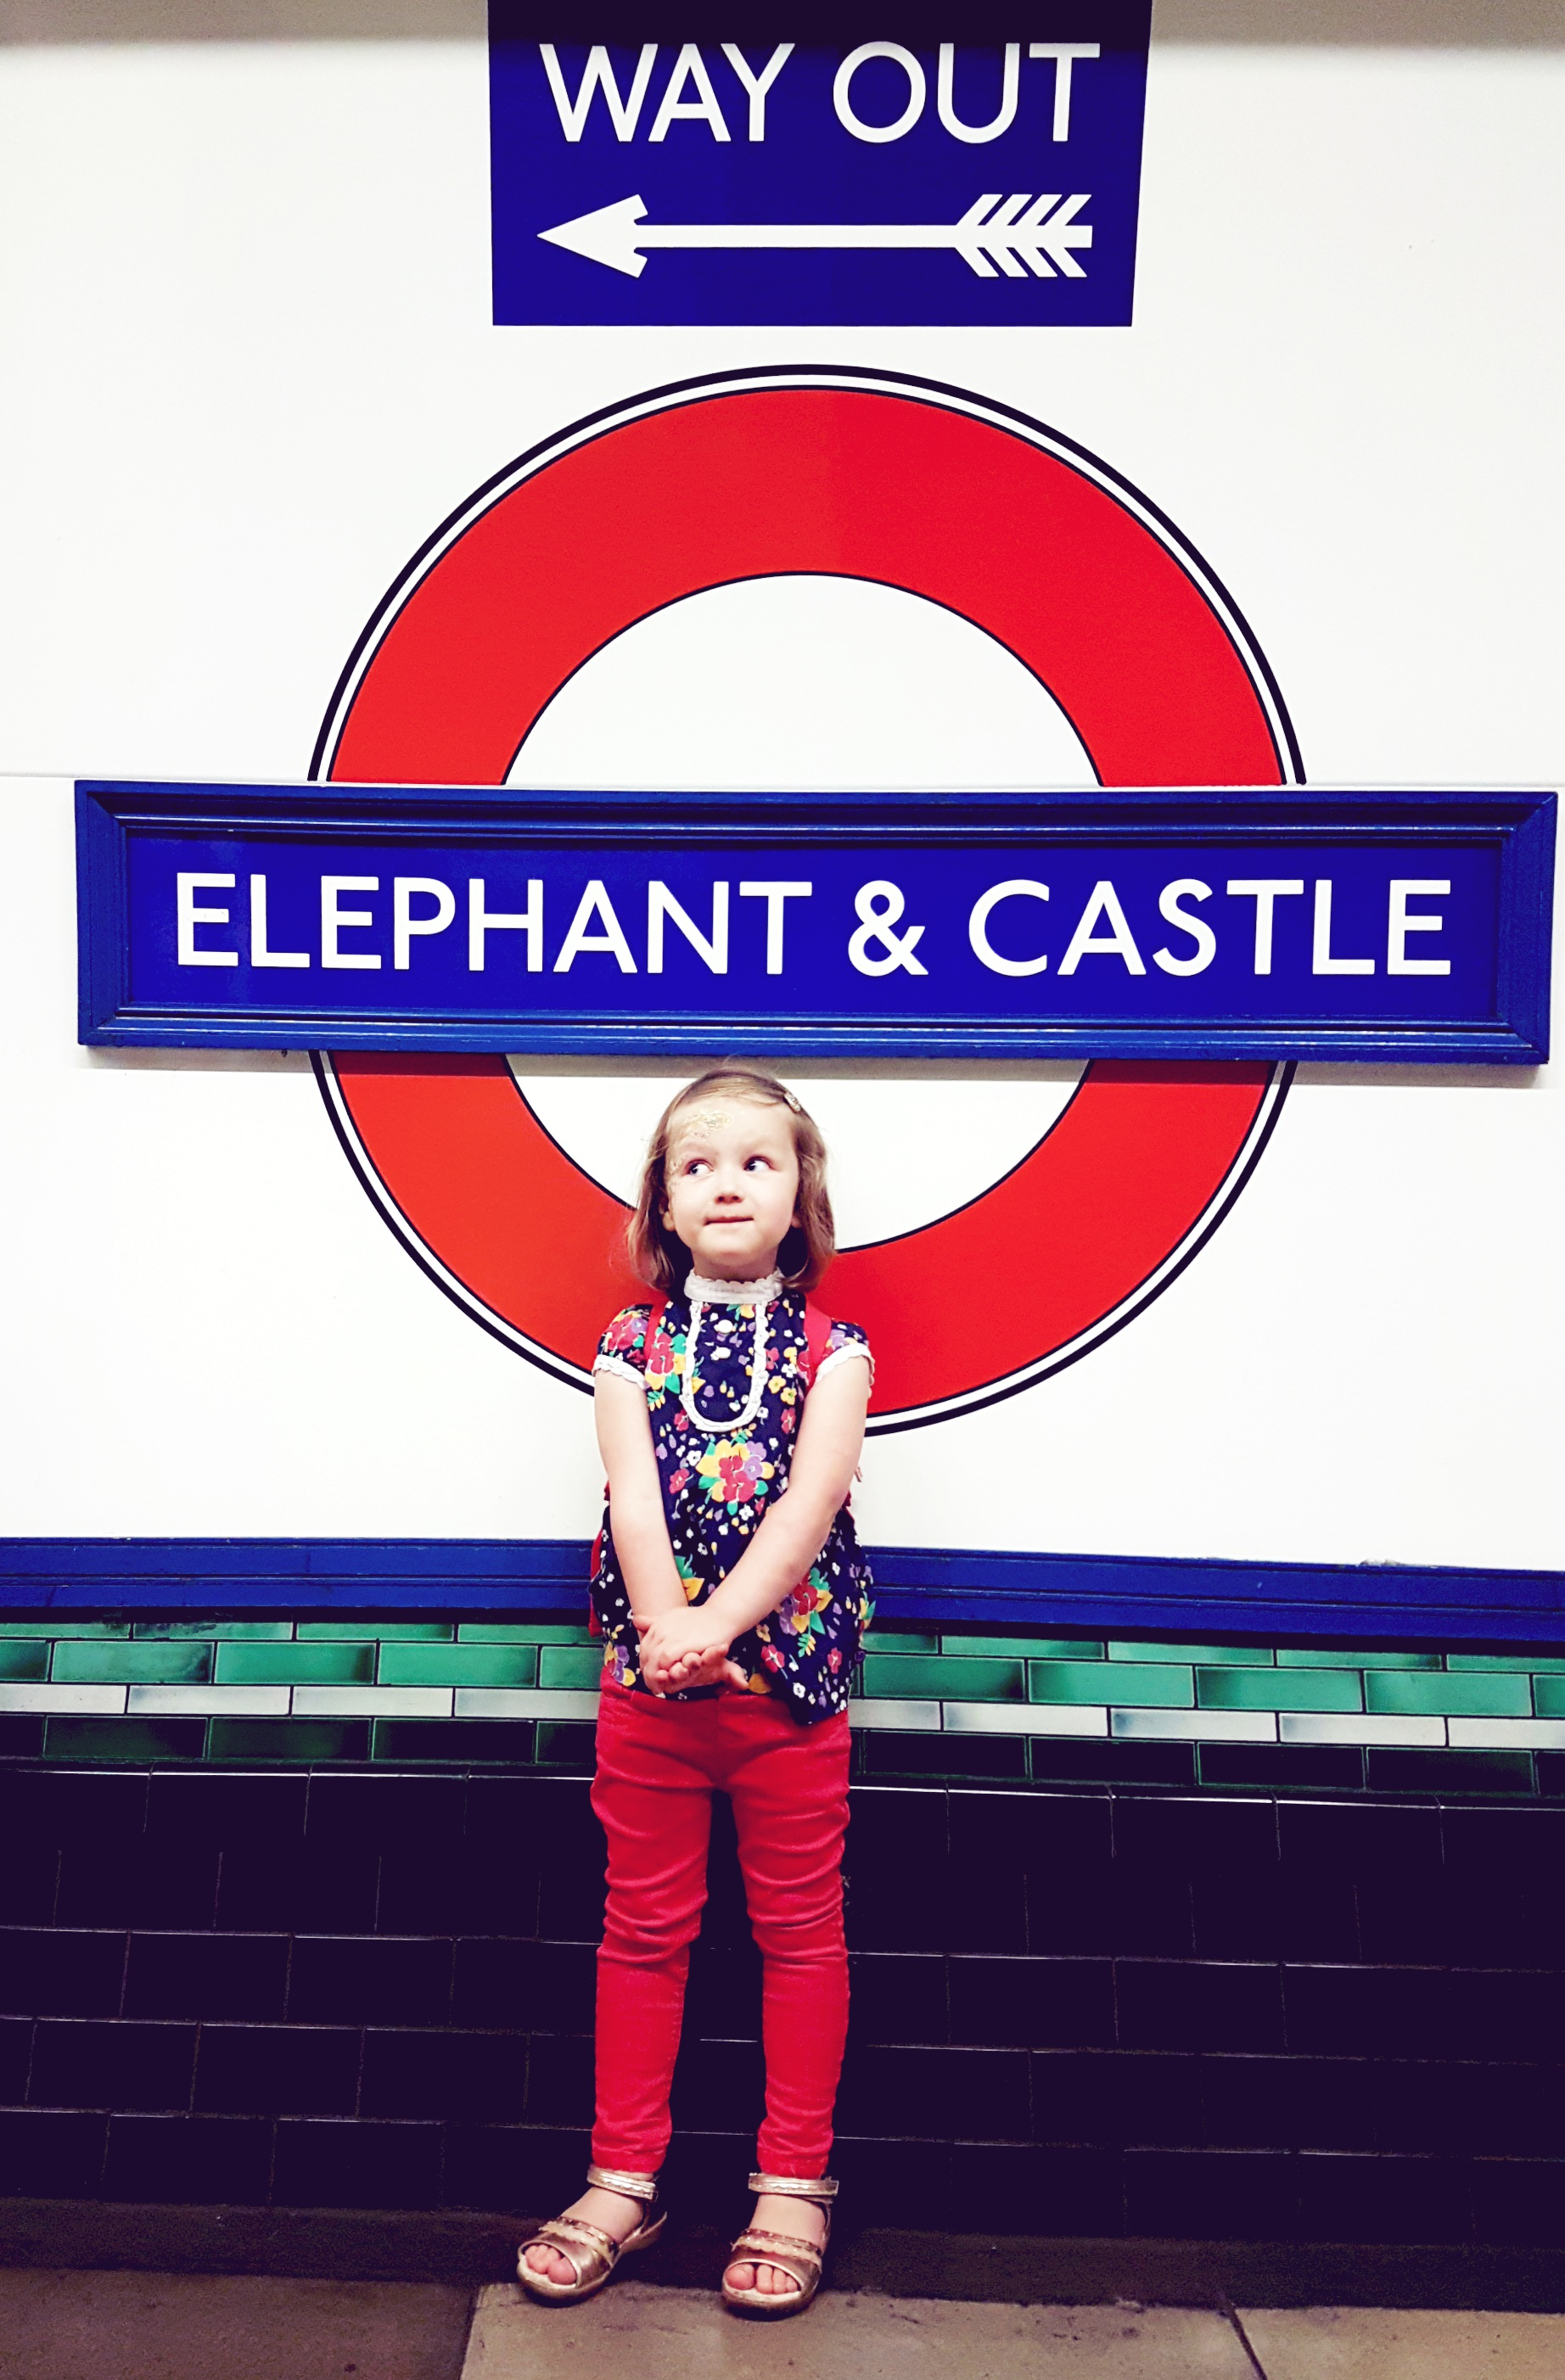 OUR WEEKEND IN LONDON (AND ELSIE'S FIRST TIME IN THE CAPITAL!)